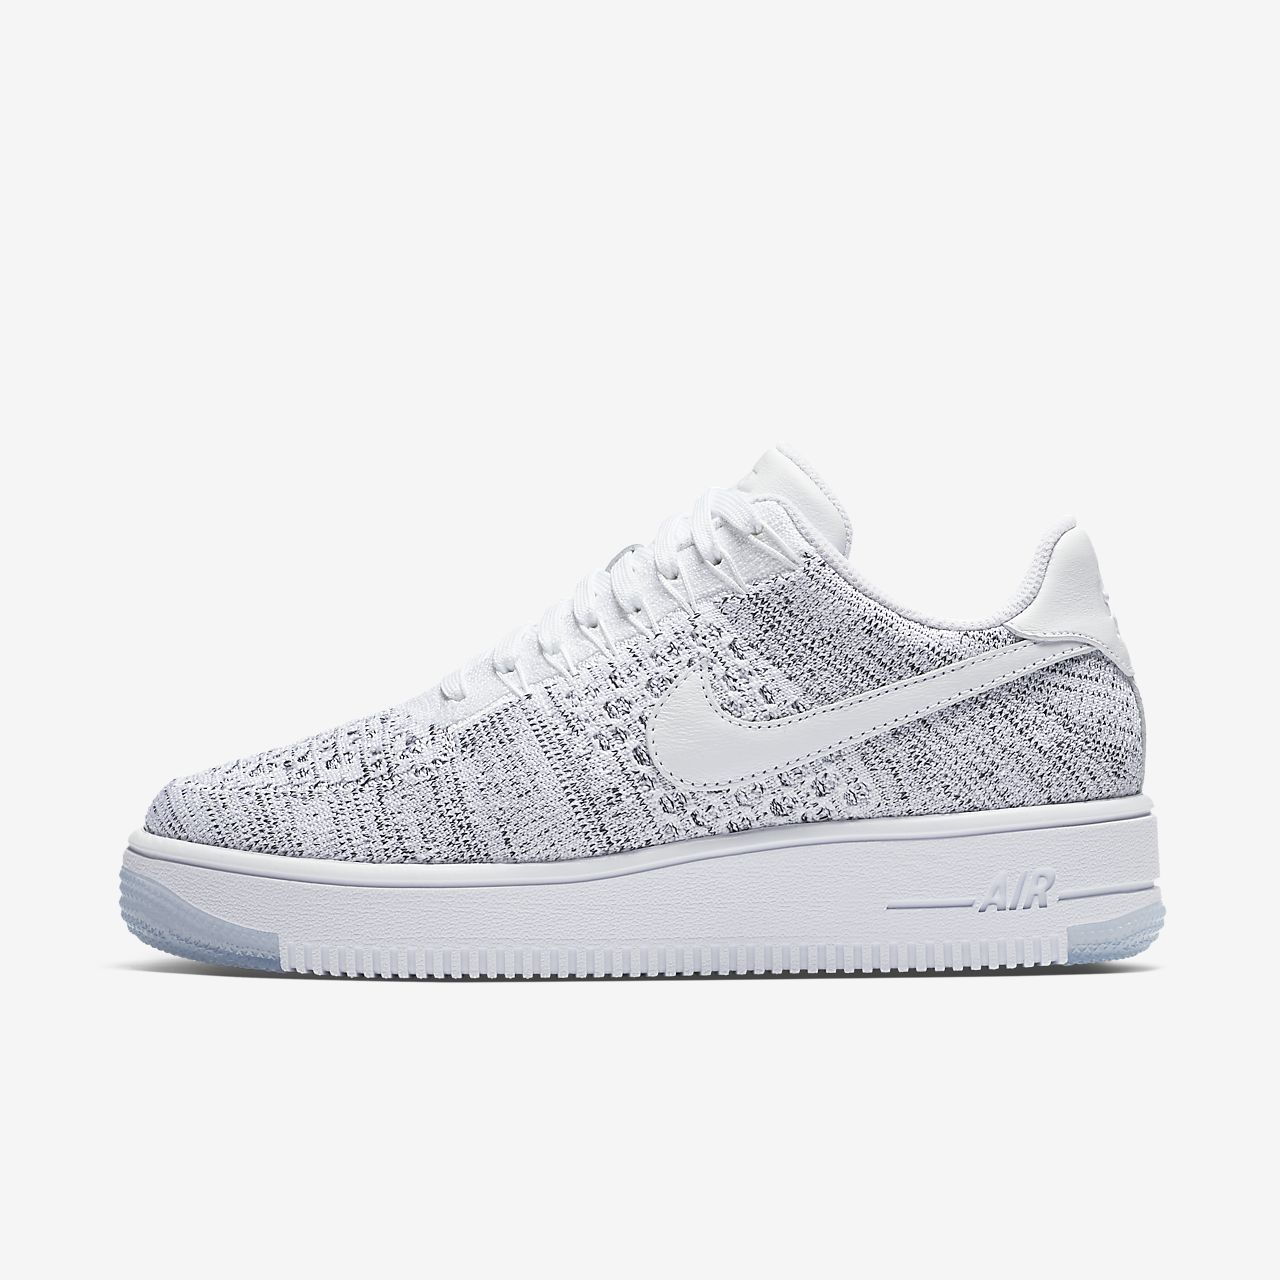 nike air force 1 ultra flyknit women's black nz